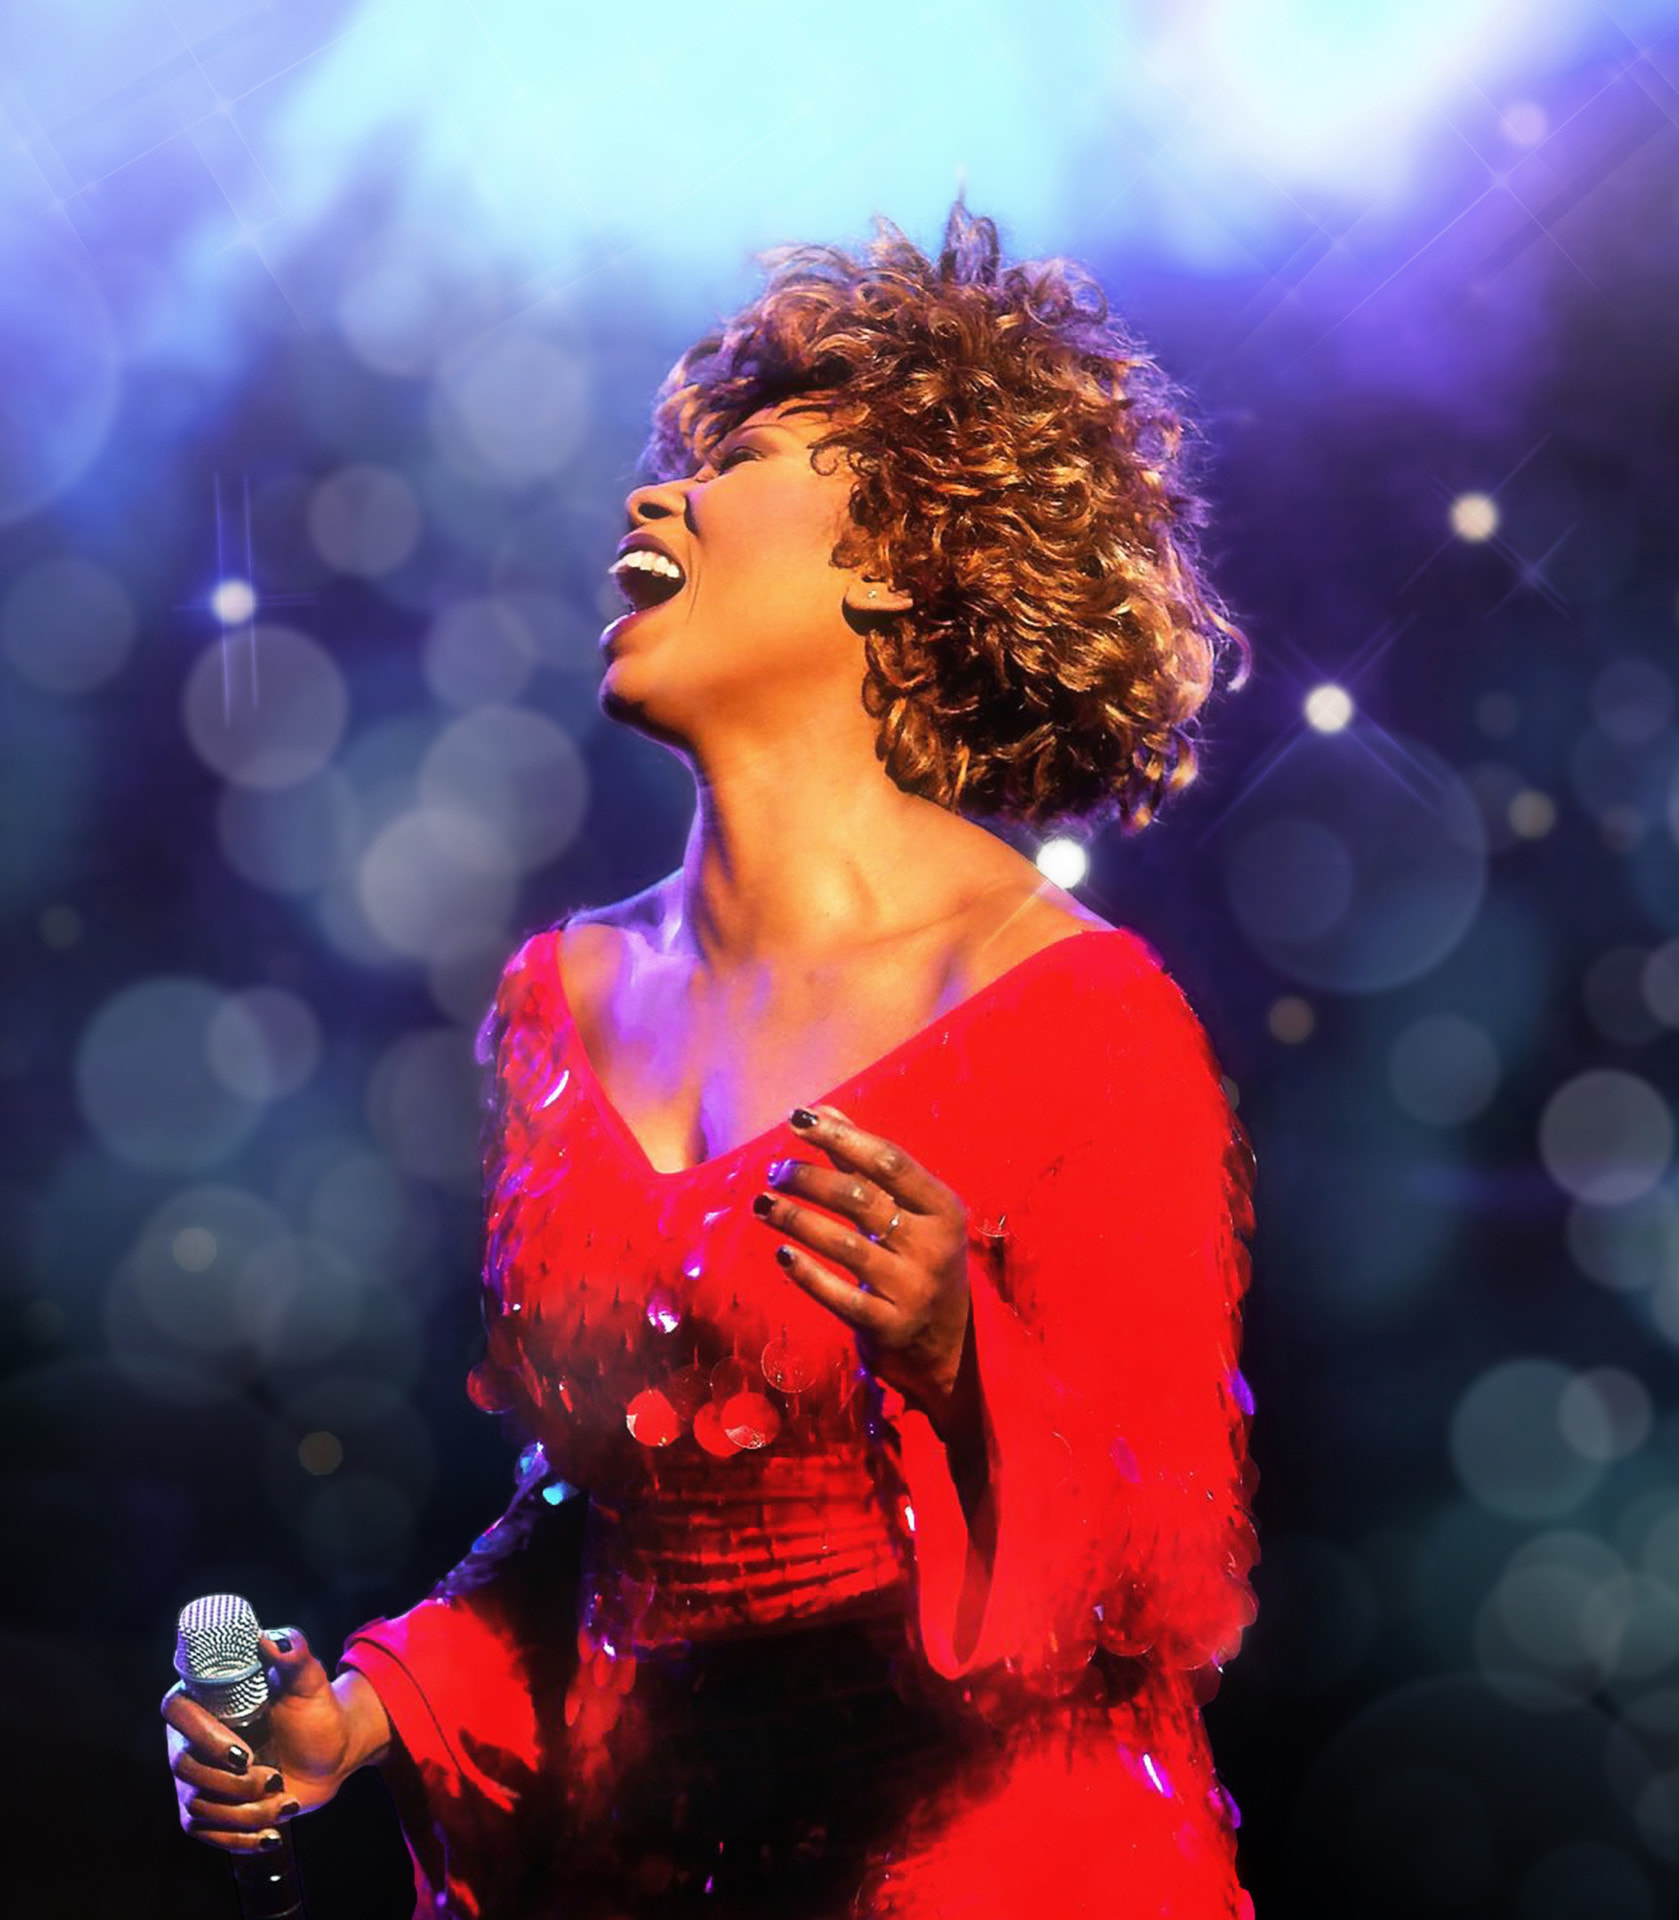 o 01 pressebild simply the best c cofo entertainment stars in concertjpg 1567095659 scaled - OXMOX verlost Tickets: Simply The Best – Die Tina Turner Story (27.12.)